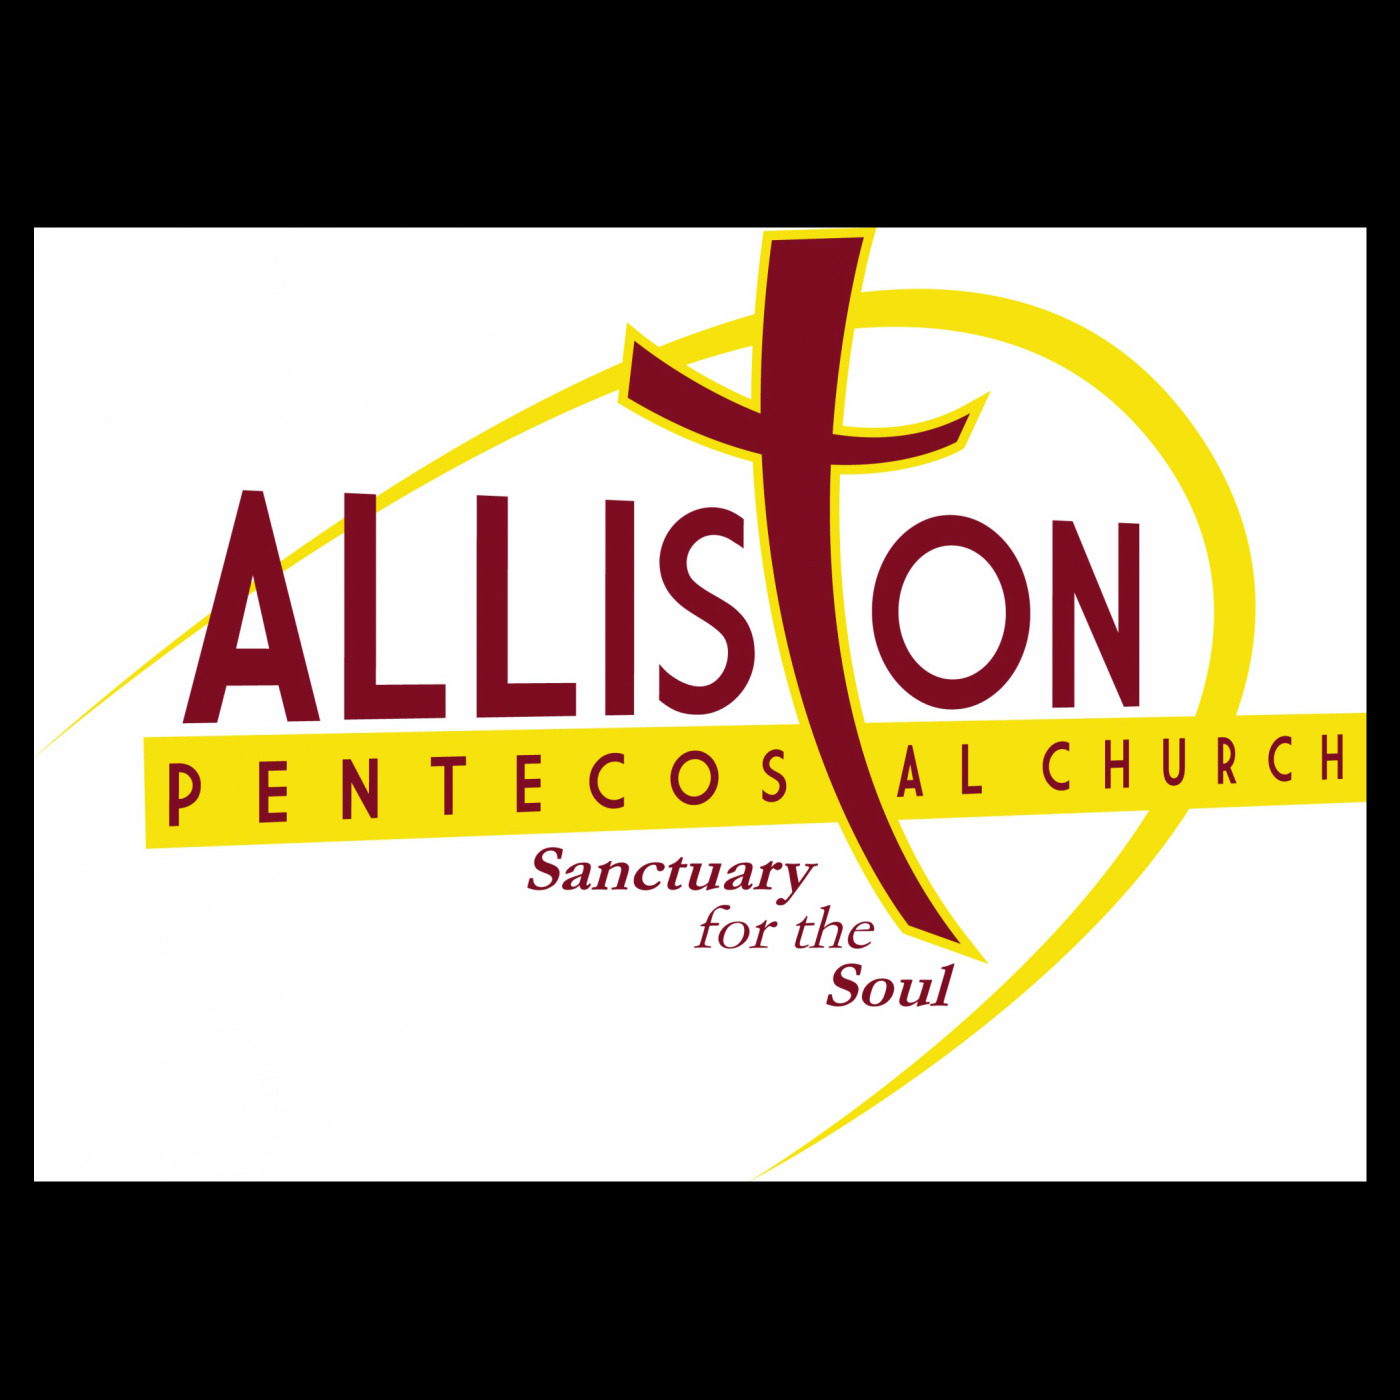 Alliston Pentecostal Church